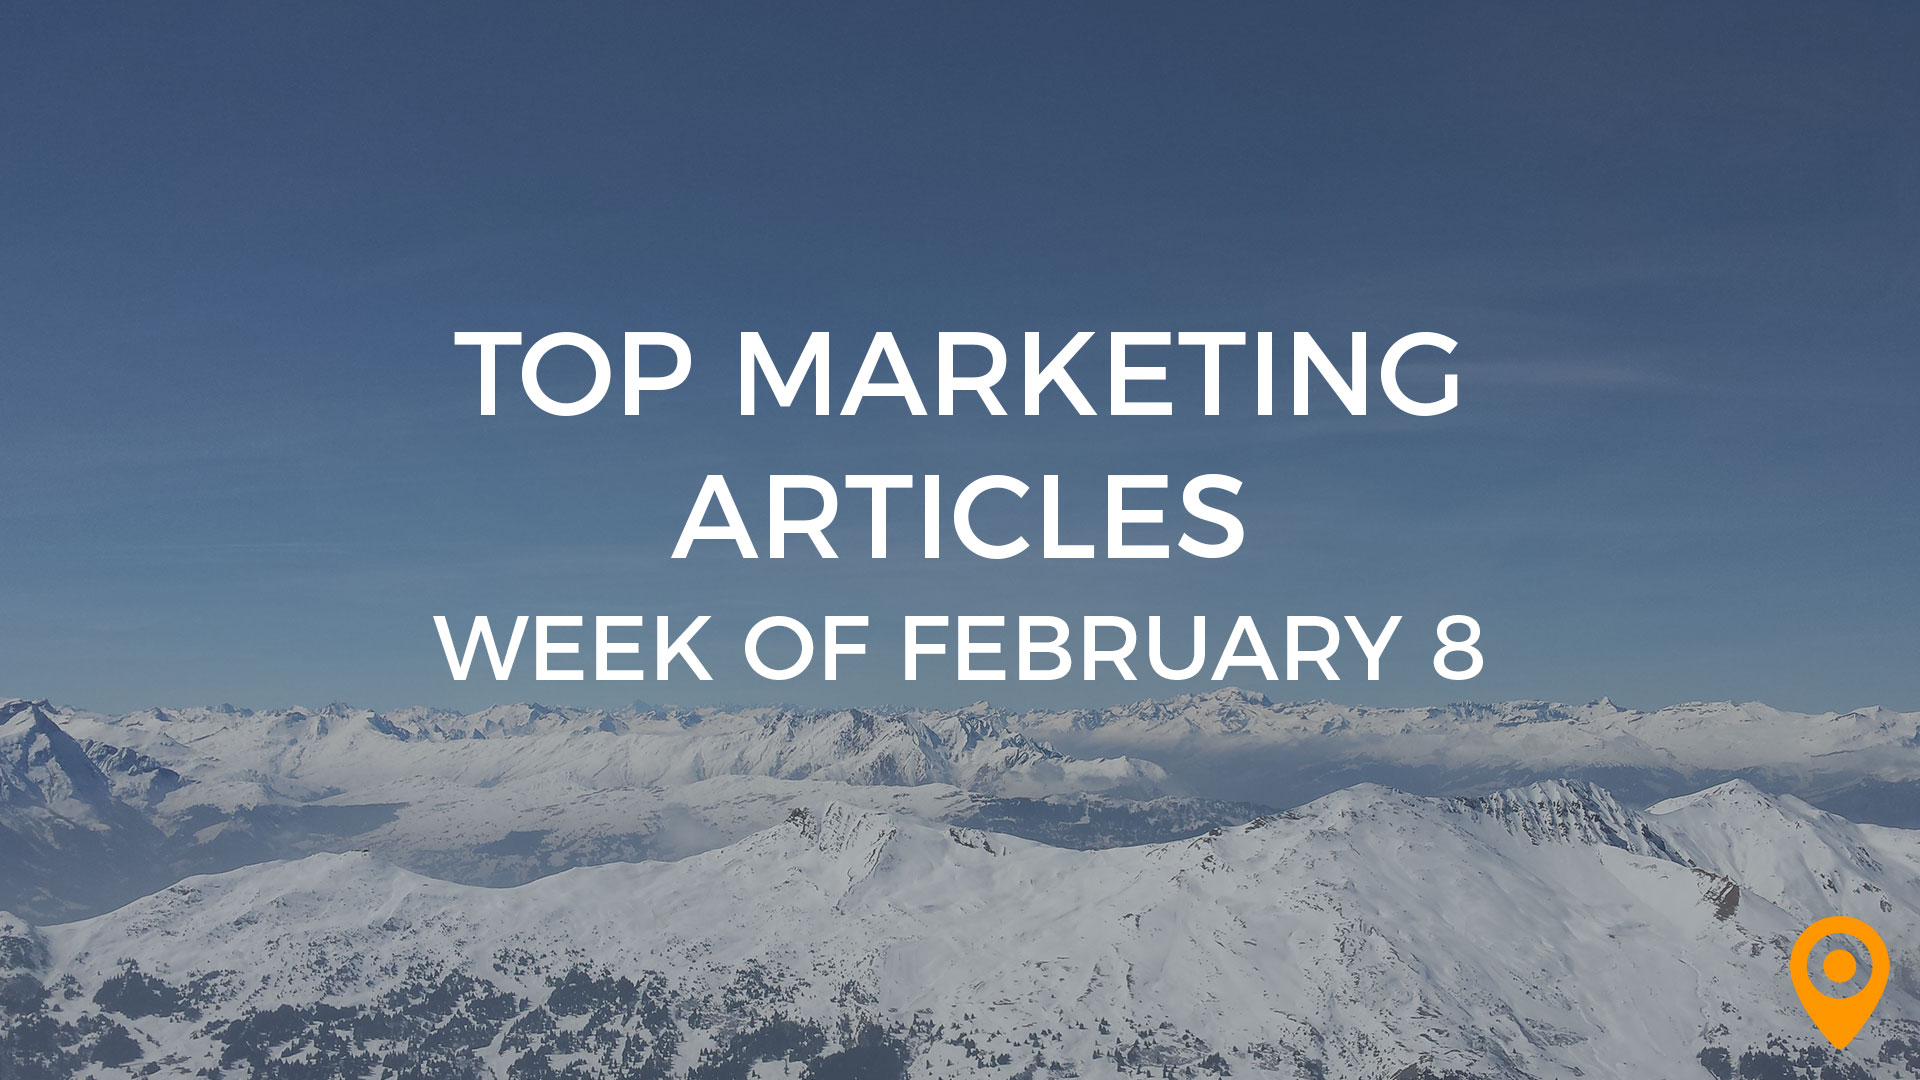 Top Marketing Articles Week of Feb 8th 2019